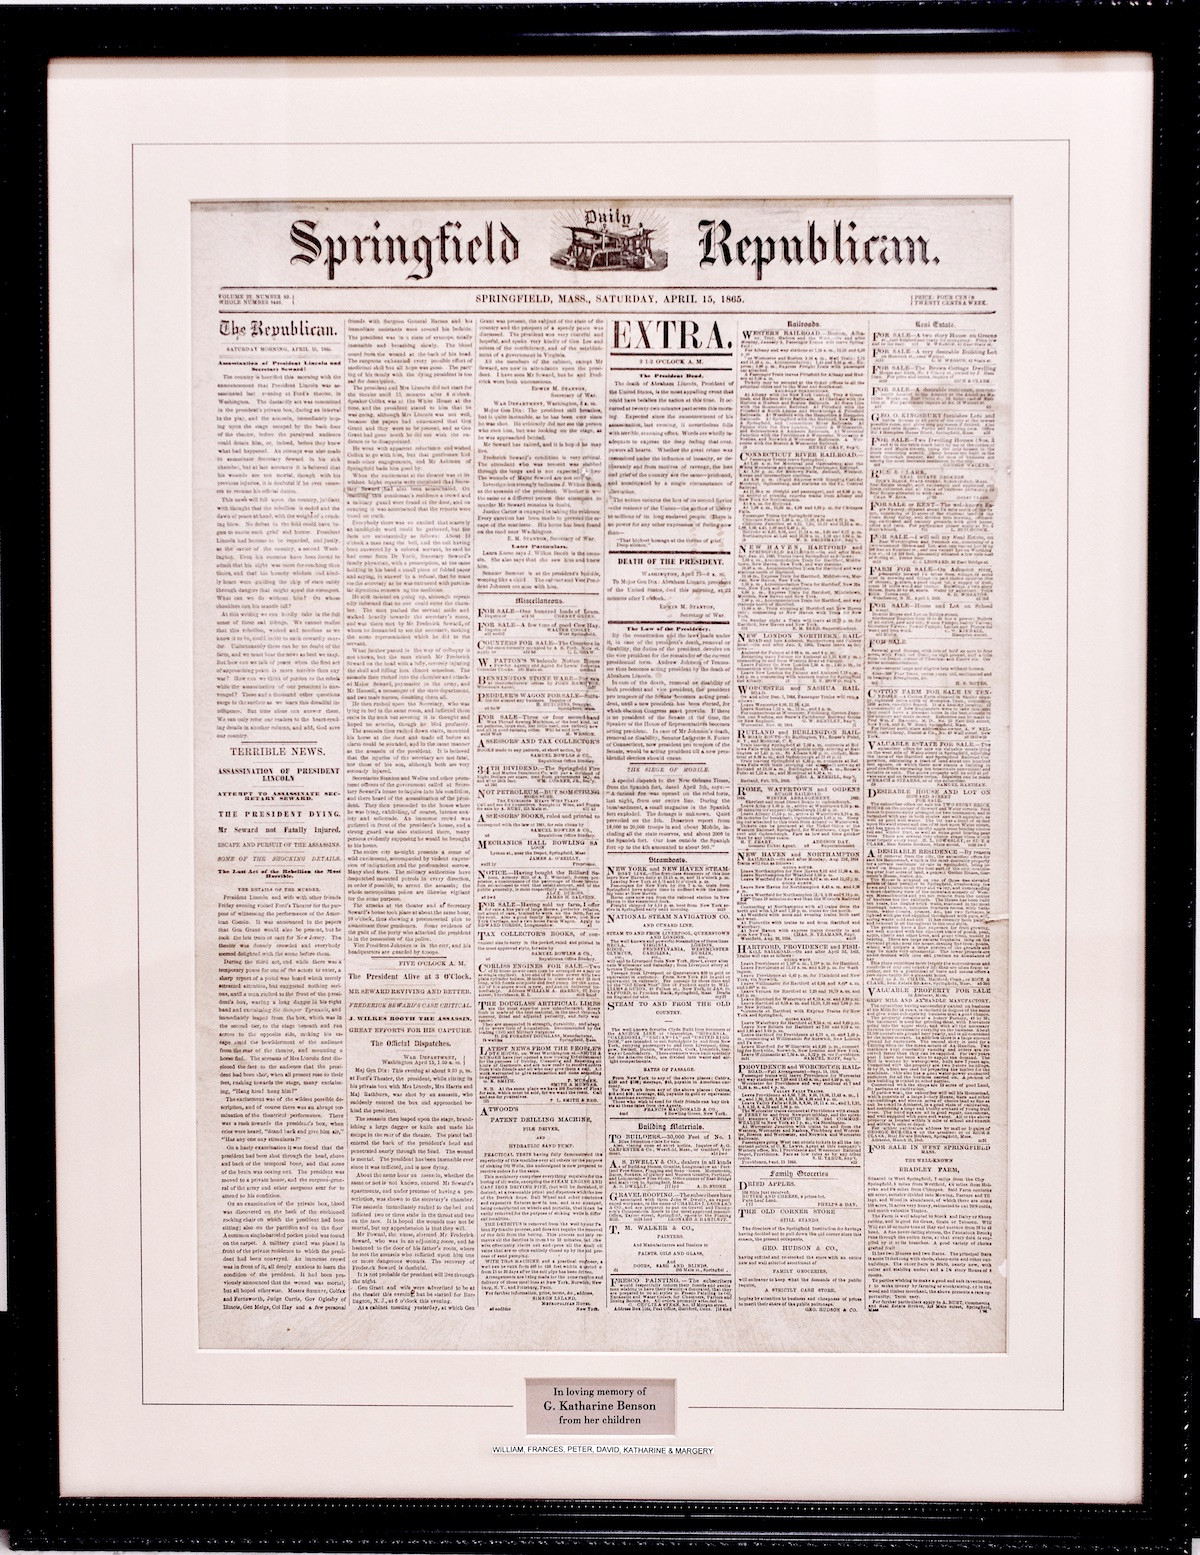 Springfield Daily Republican - April 15, 1865